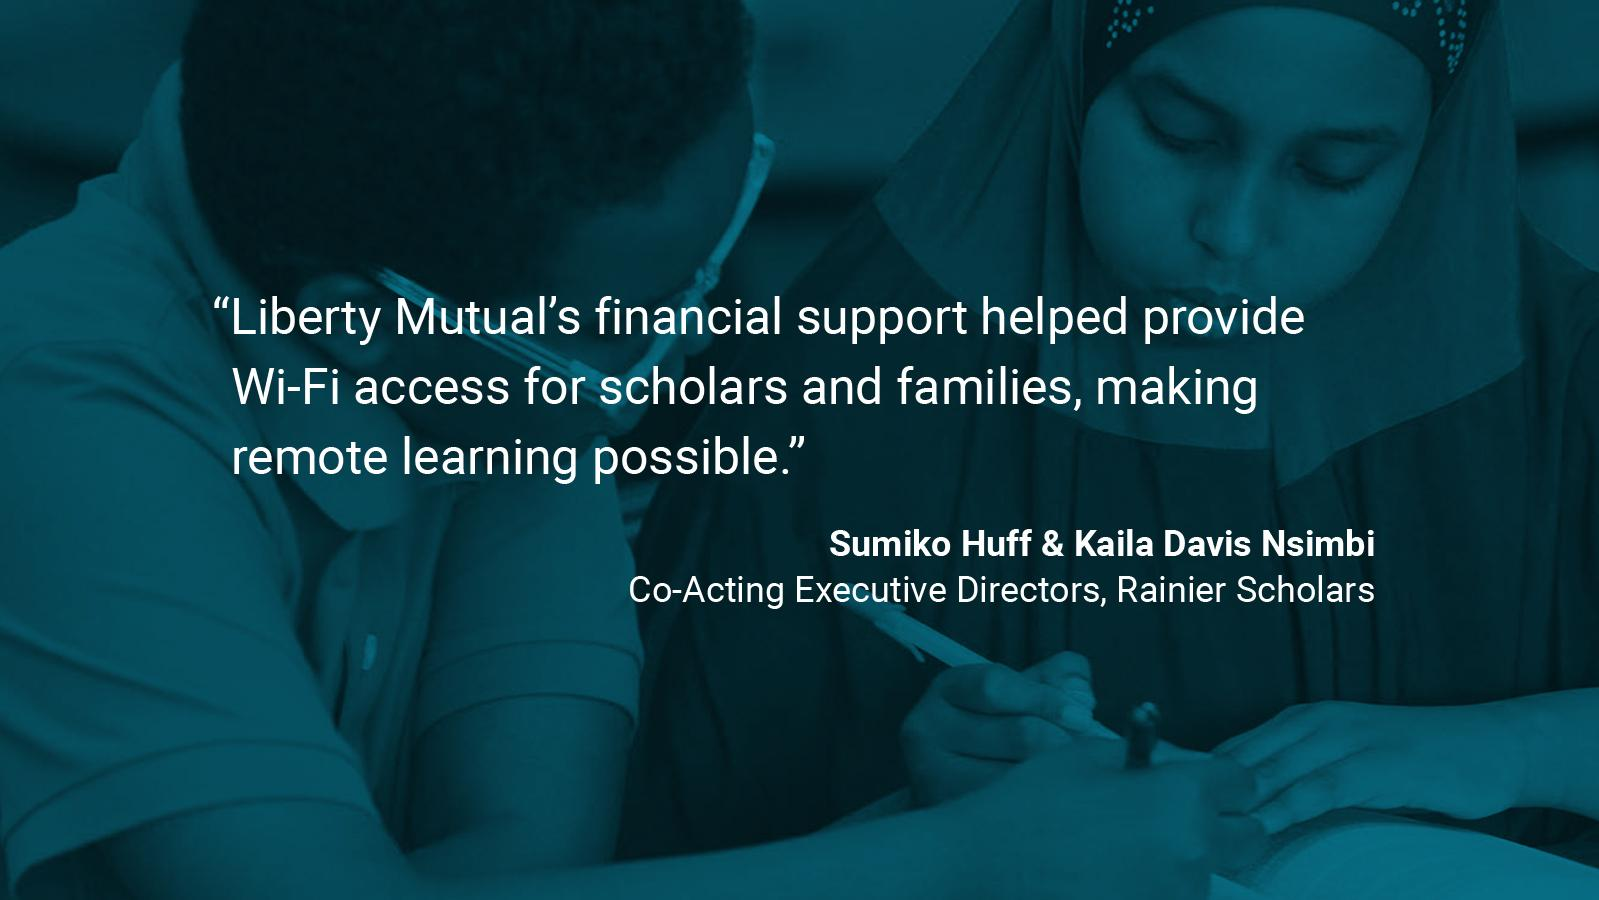 "(slide 4 of 4) Quote by: Sumiko Huff & Kaila Davis Nsimbi, Co-Acting Executive Directors at Rainier Scholars: ""Liberty Mutual's financial support helped provide WIFI access for scholars & families – making remote learning possible.""."